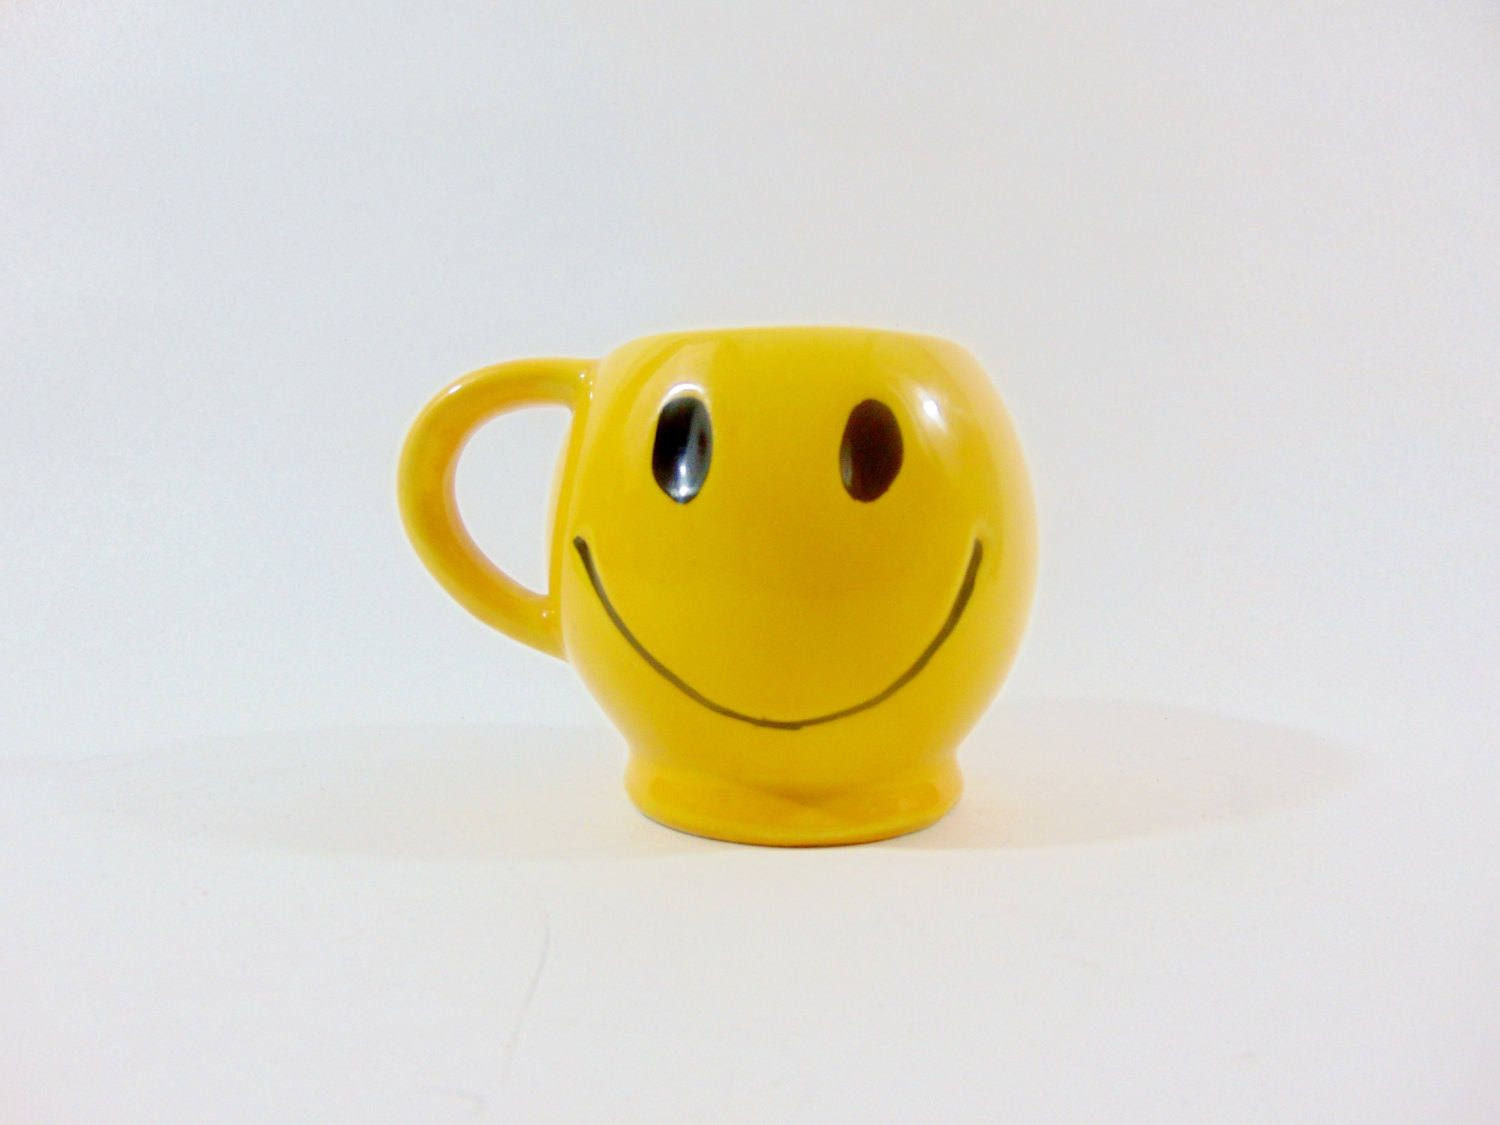 happy face vase of 1970s mccoy mccoy pottery happy face smiley face smiley face pertaining to 1970s mccoy mccoy pottery happy face smiley face smiley face mug